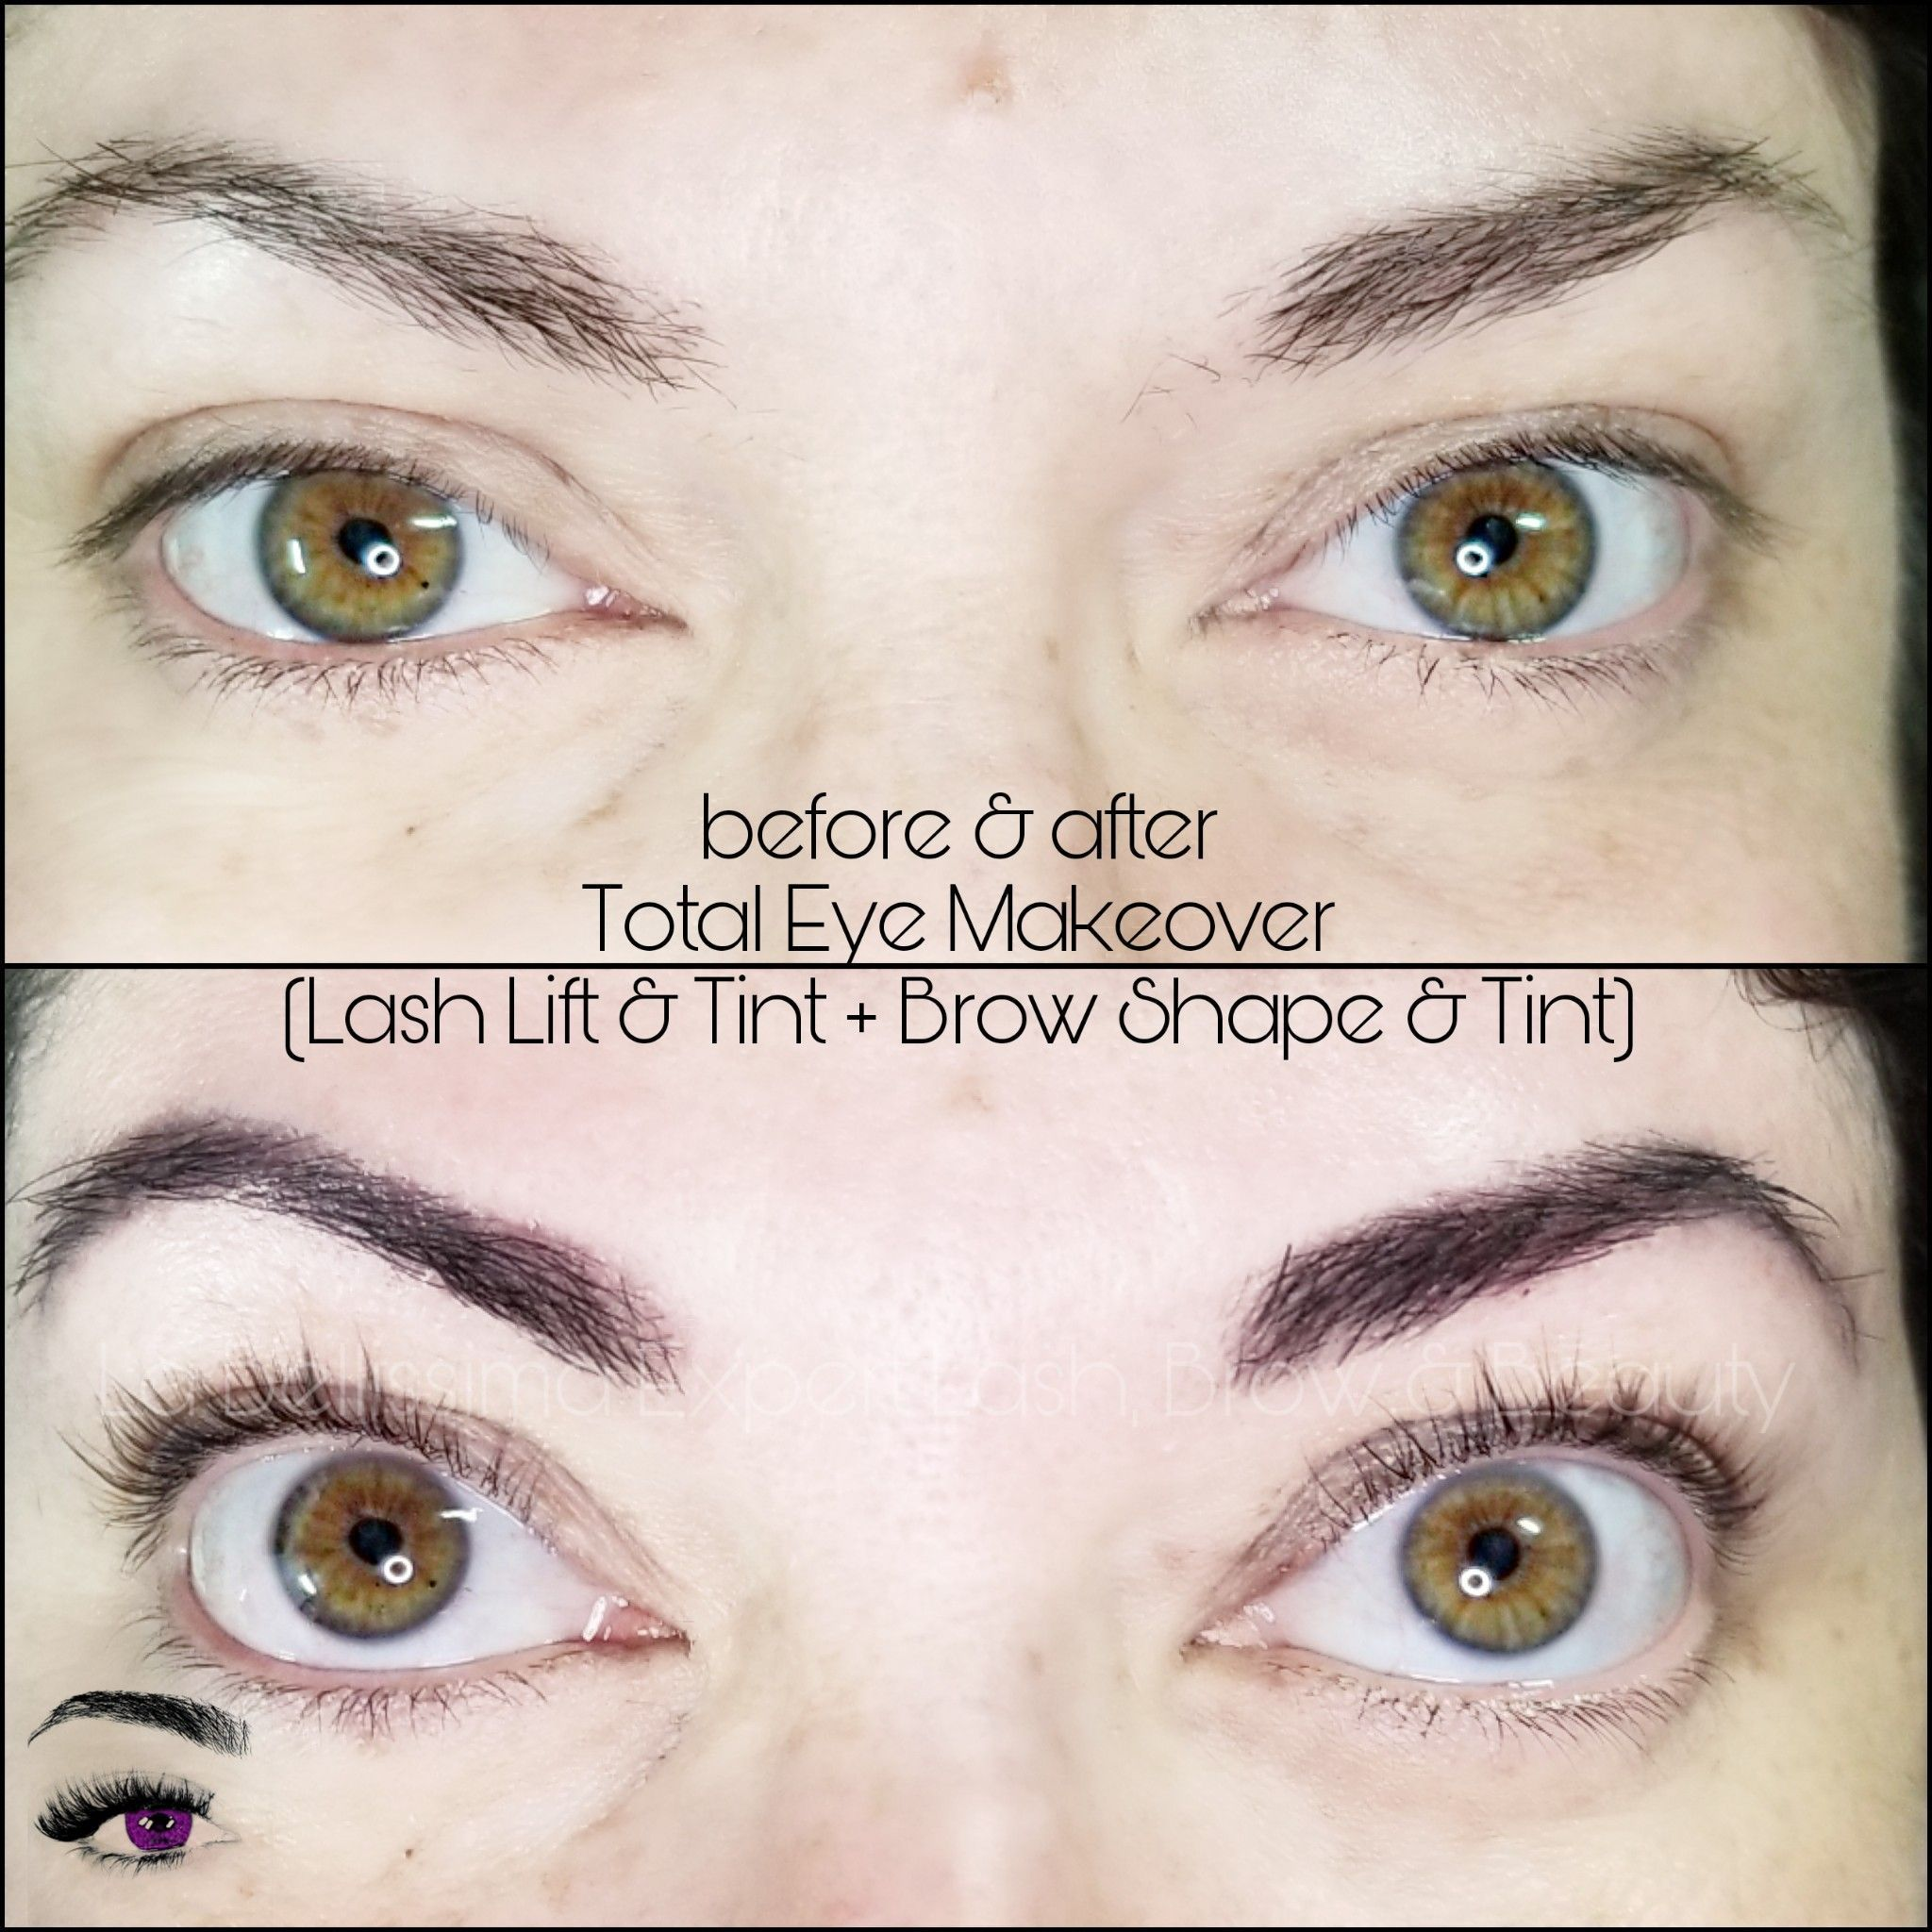 Hey! A good, oldfashioned Total Eye Makeover! This is a